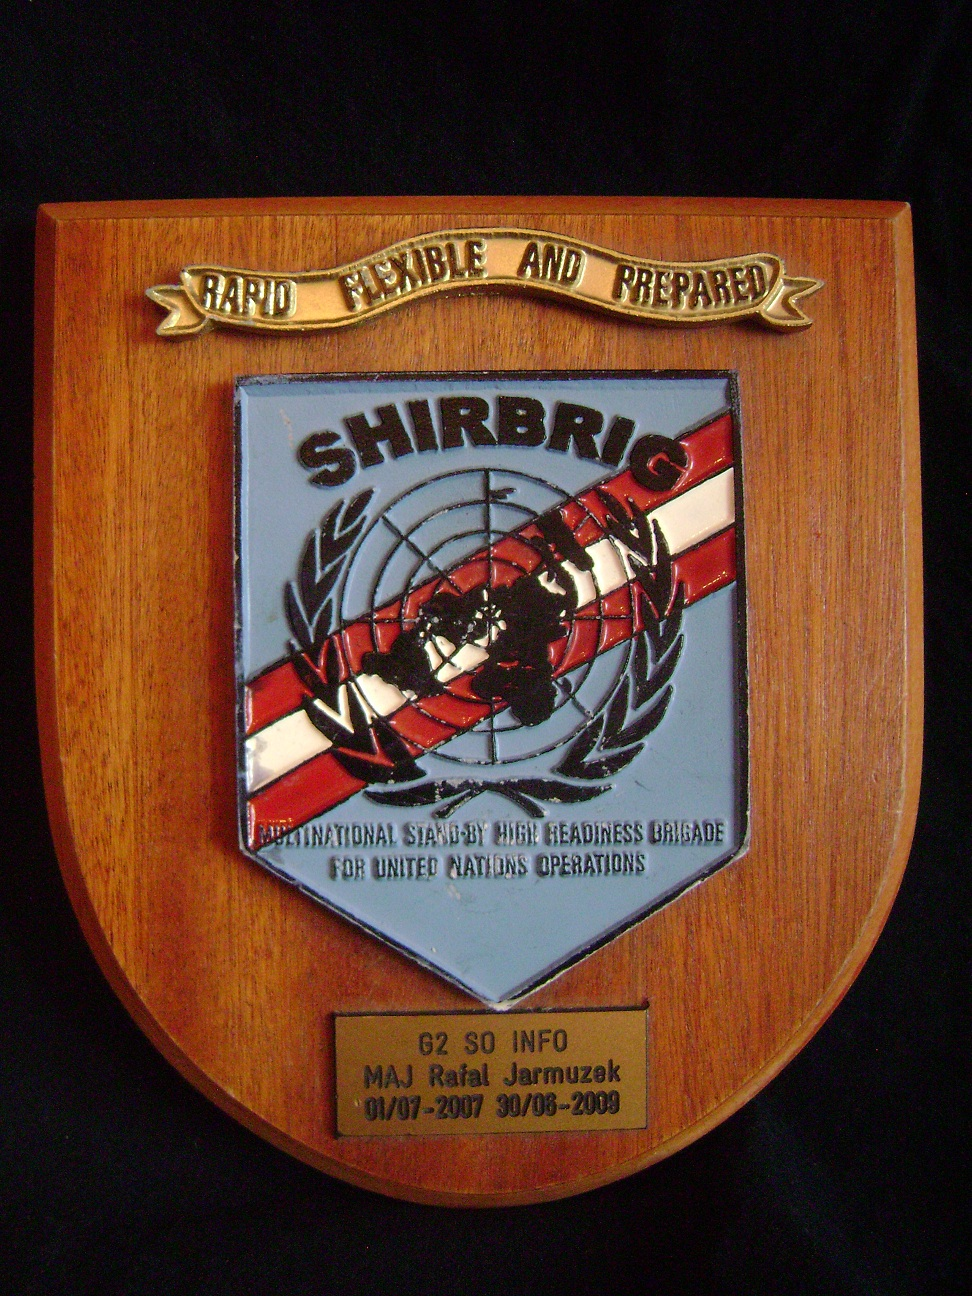 Plaketa_Shirbrig_Brigade_United_Nations_1.JPG